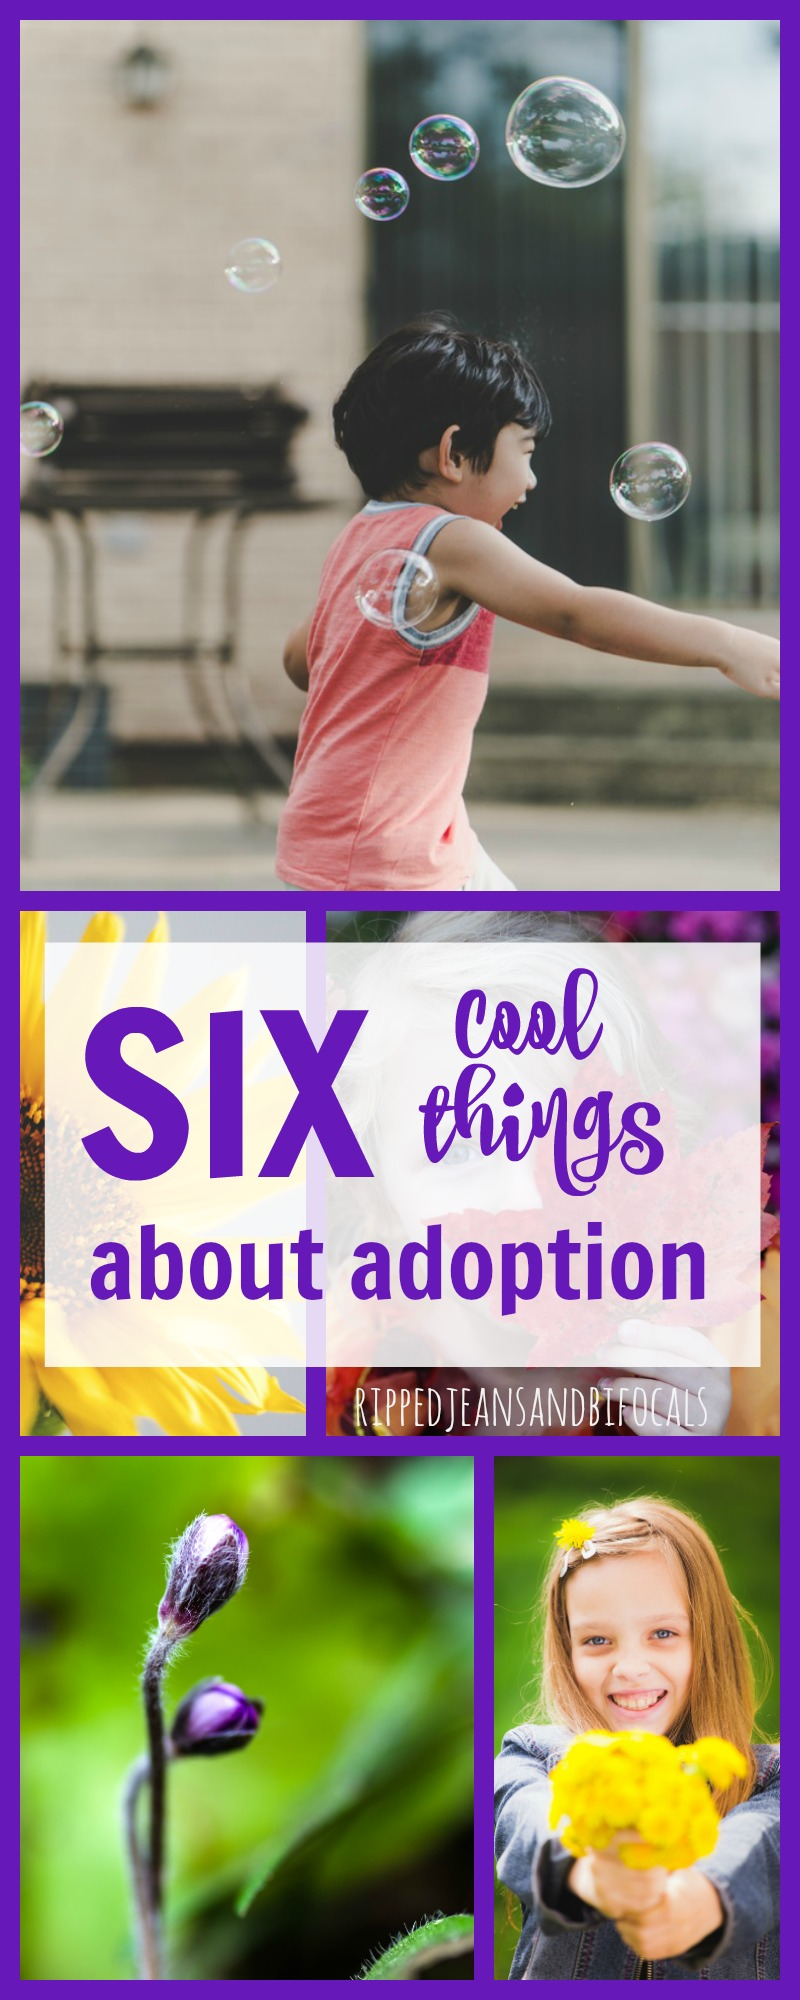 Six Cool Things About Adoption|Ripped Jeans and Bifocals